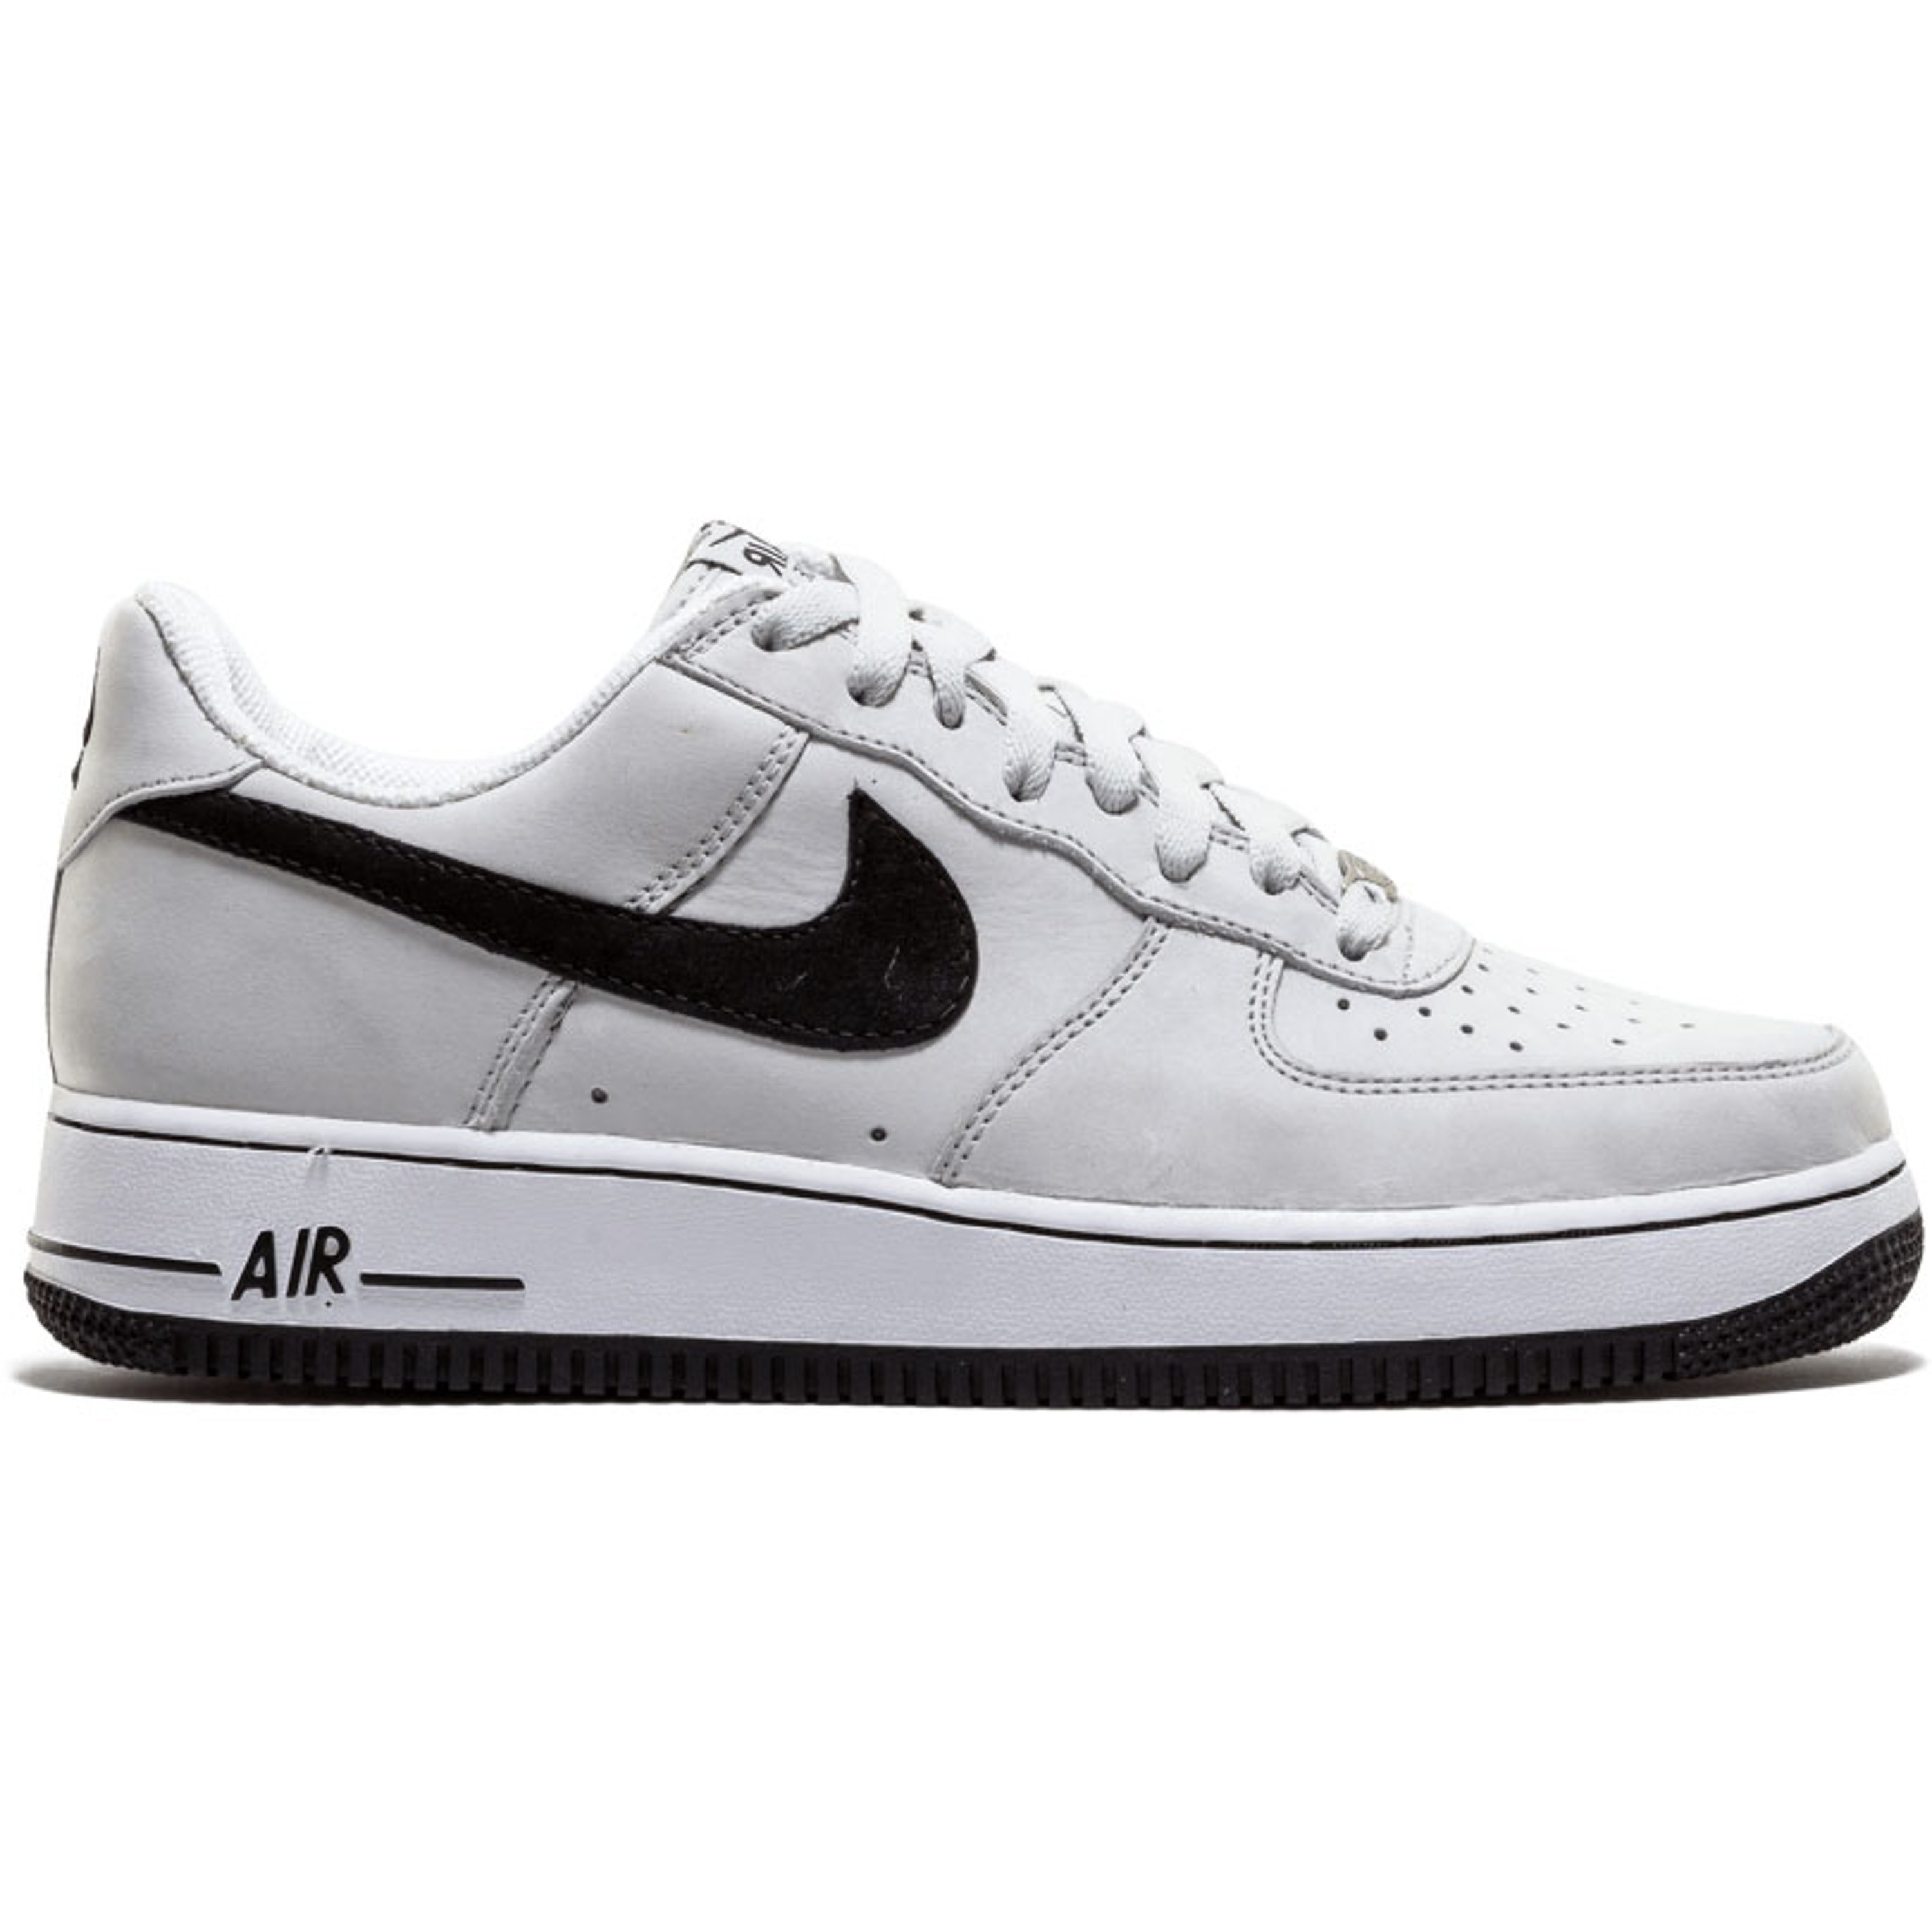 Nike Air Force 1 Low Neutral Grey Black White (306353-007)